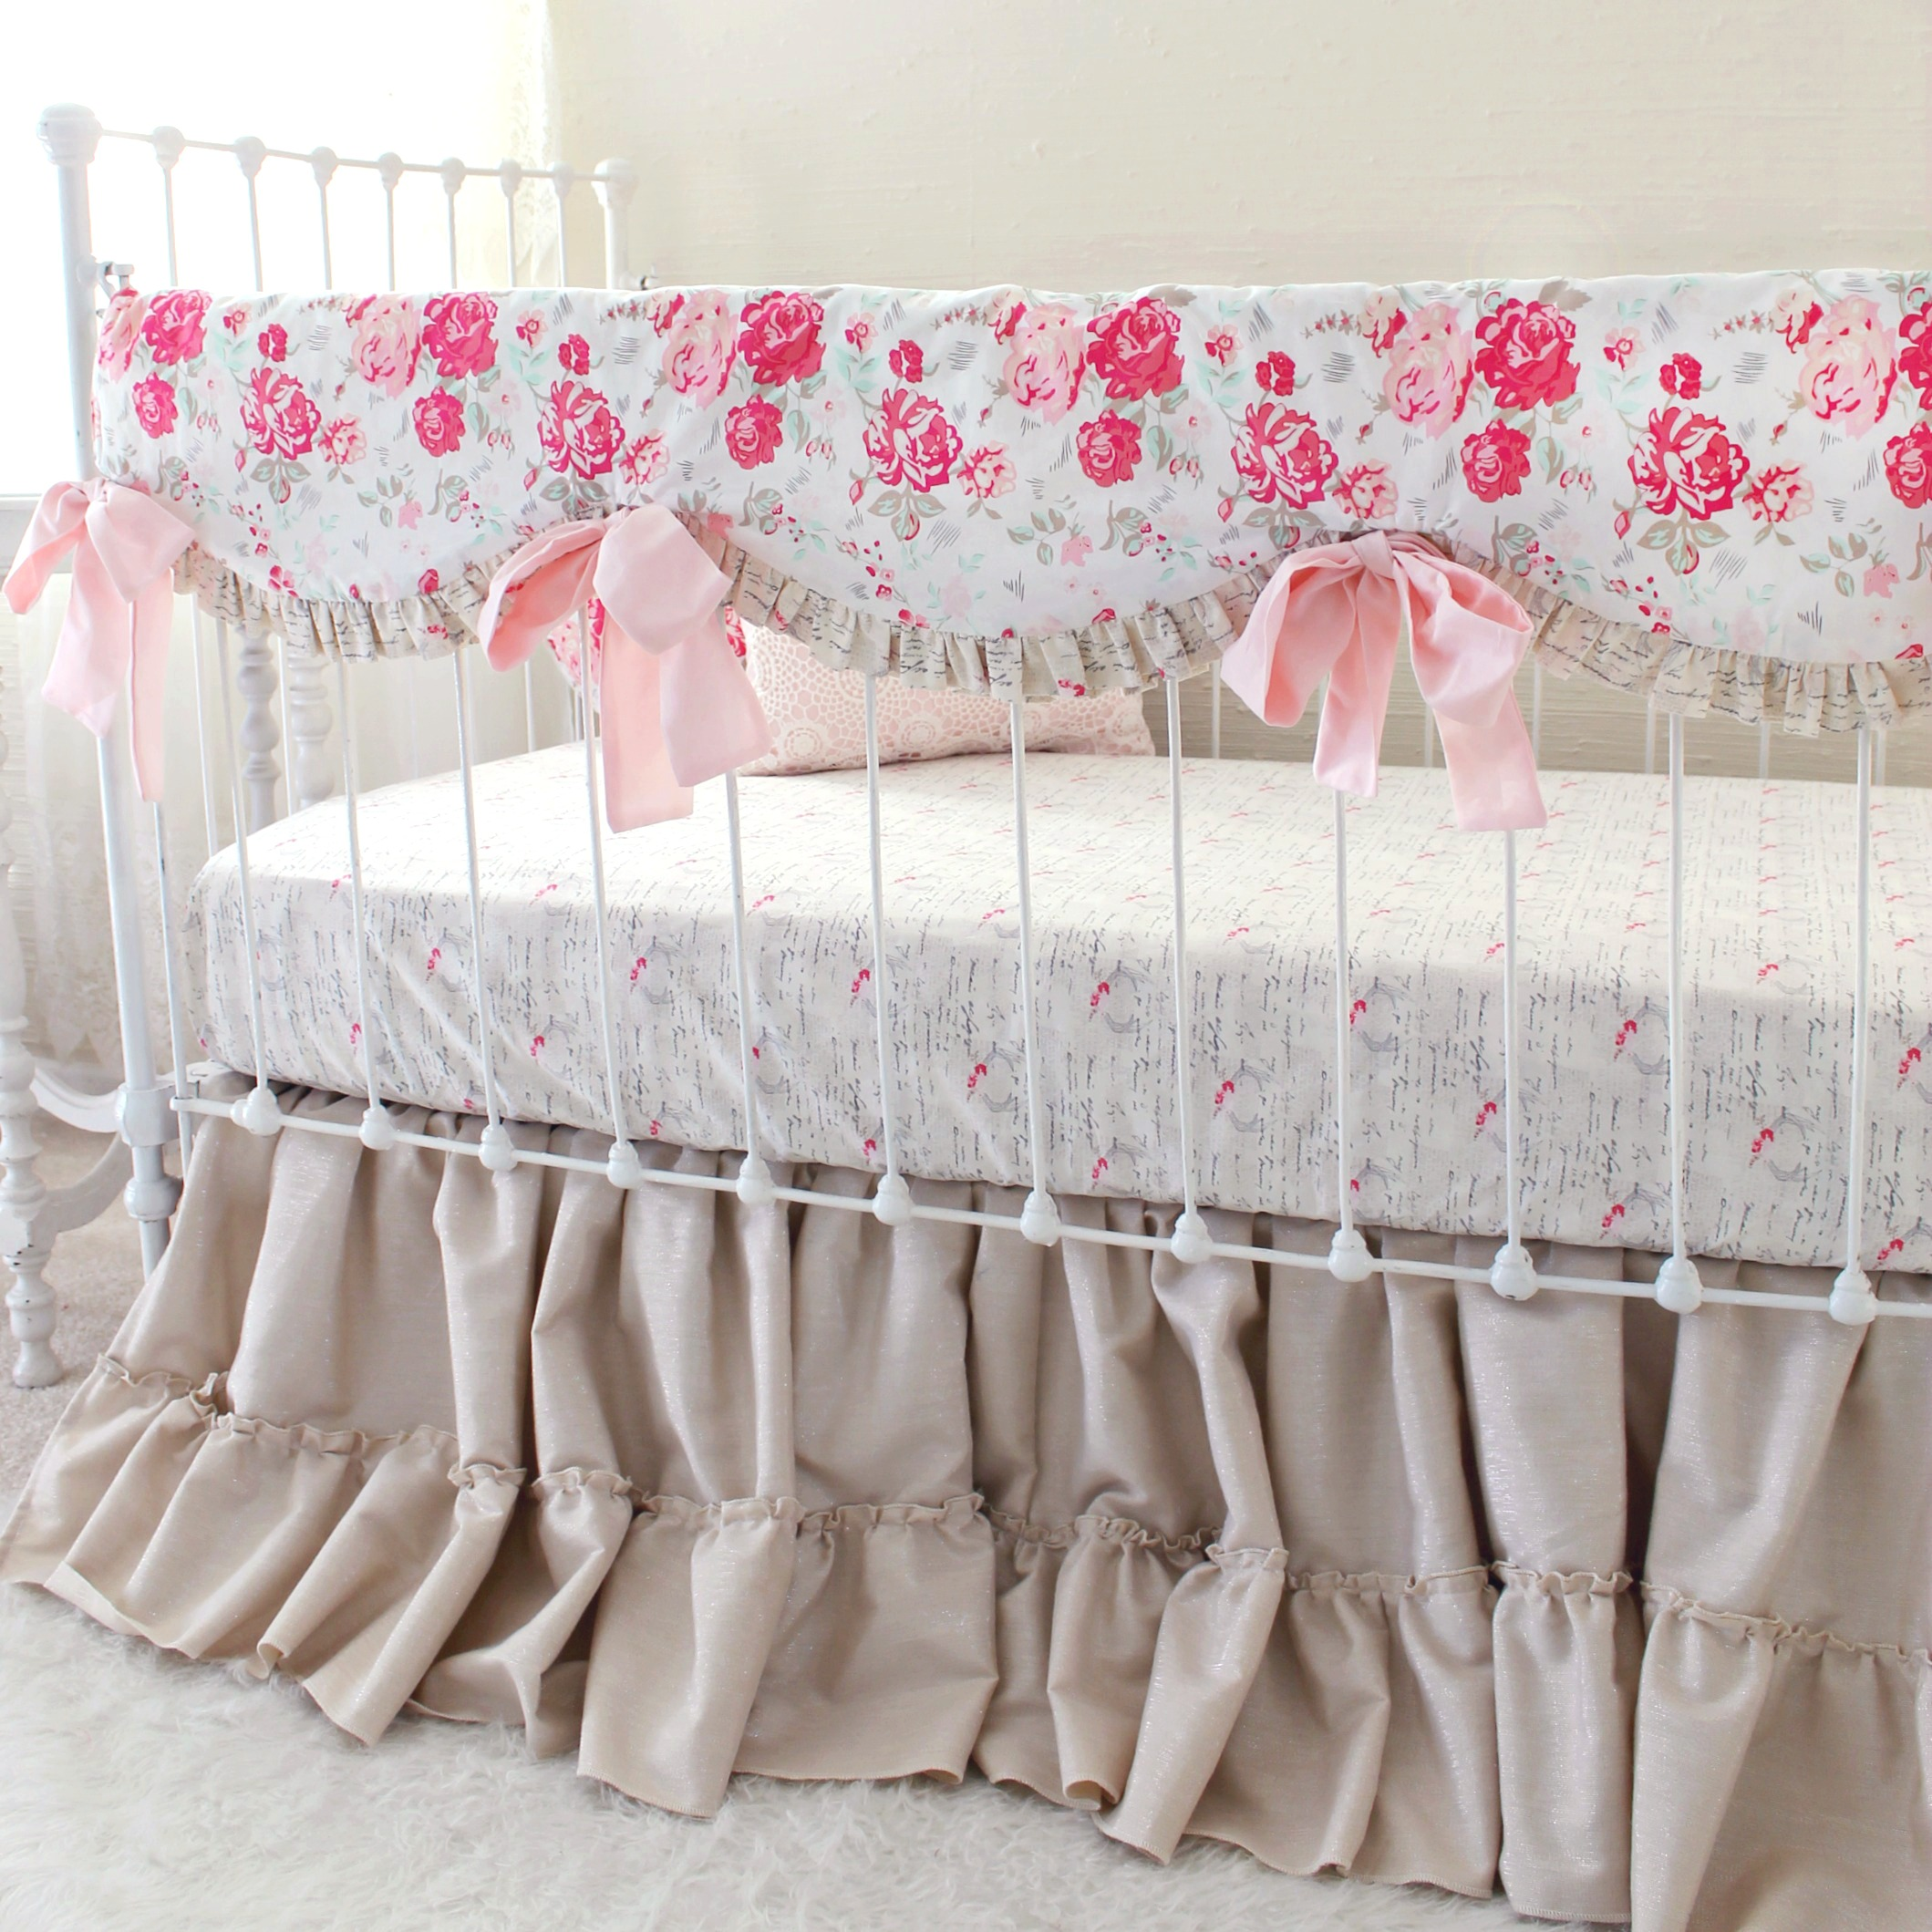 crib deer theme create pink unique will by large white fs and girl nursery the your jojo this set baby designs floral deerfloral sweet cribs blush woodland collection watercolor valance bedding for boho a mint itm